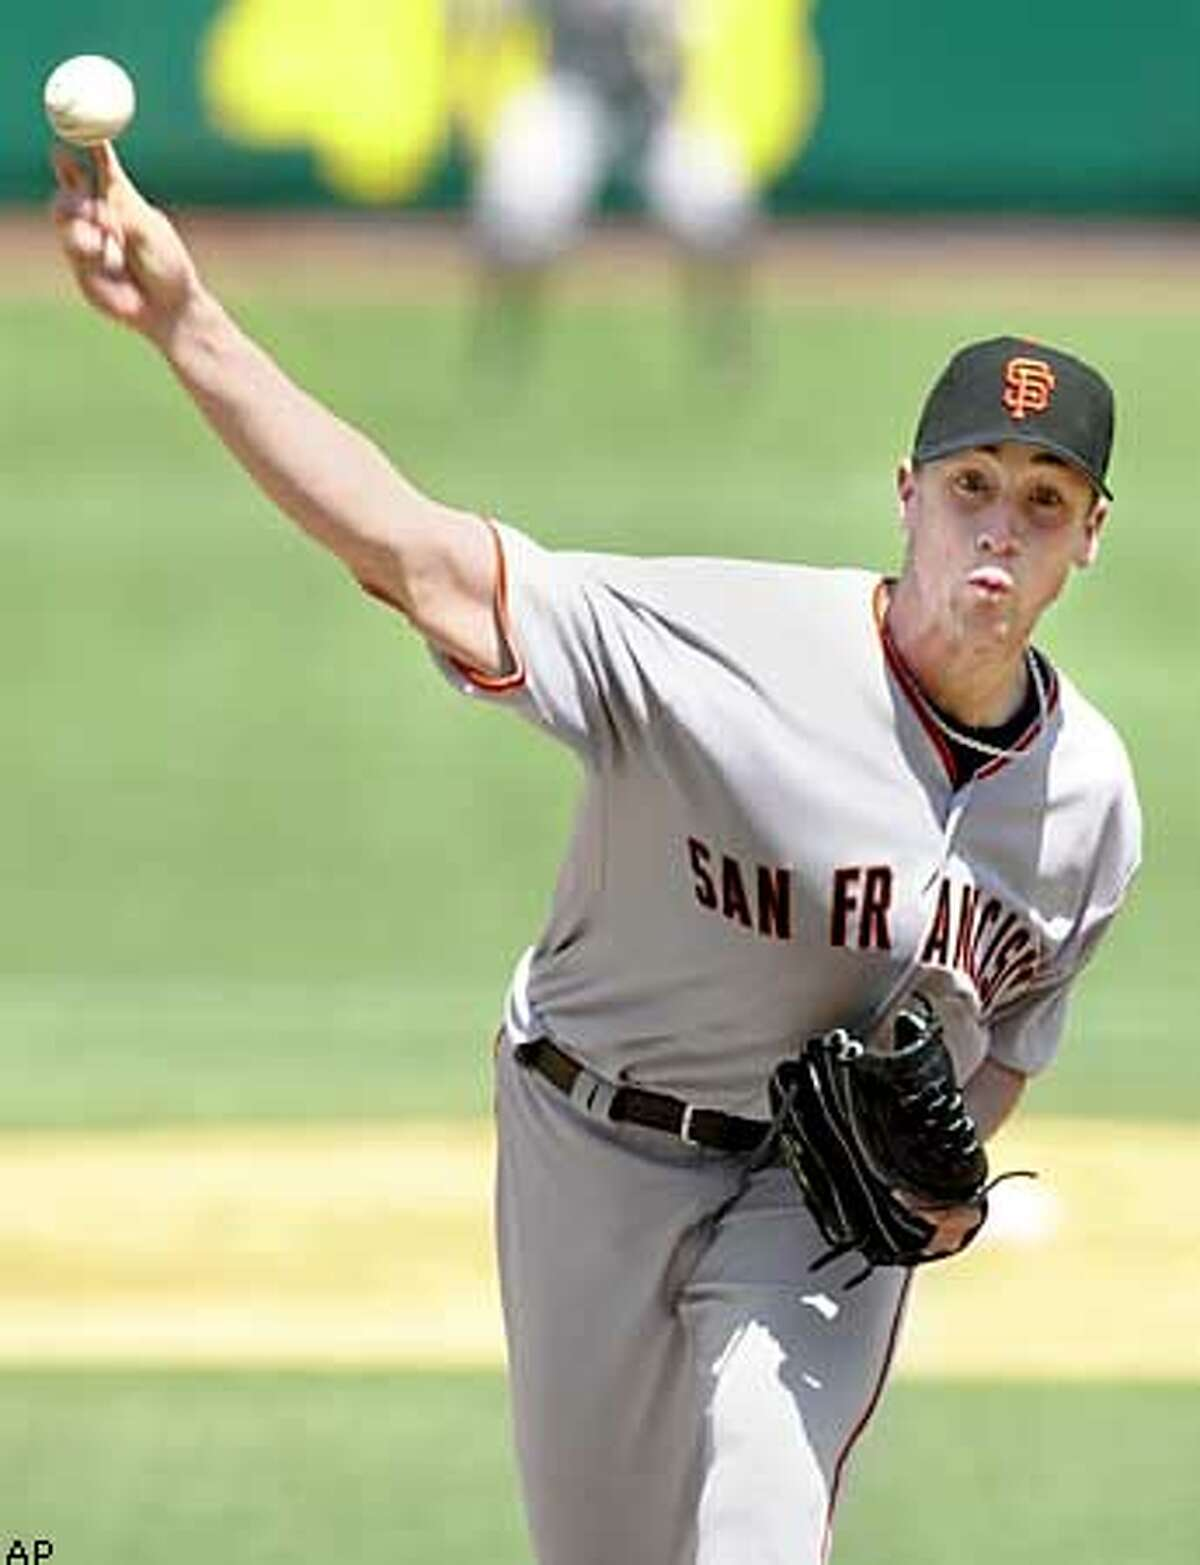 San Francisco Giants pitcher Jesse Foppert throws a pitch to the Philadelphia Phillies during the second inning Sunday, April 27, 2003 in Philadelphia. The Phillies won 1-0 with pitcher Kevin Millwood throwing a no-hitter .(AP Photo)